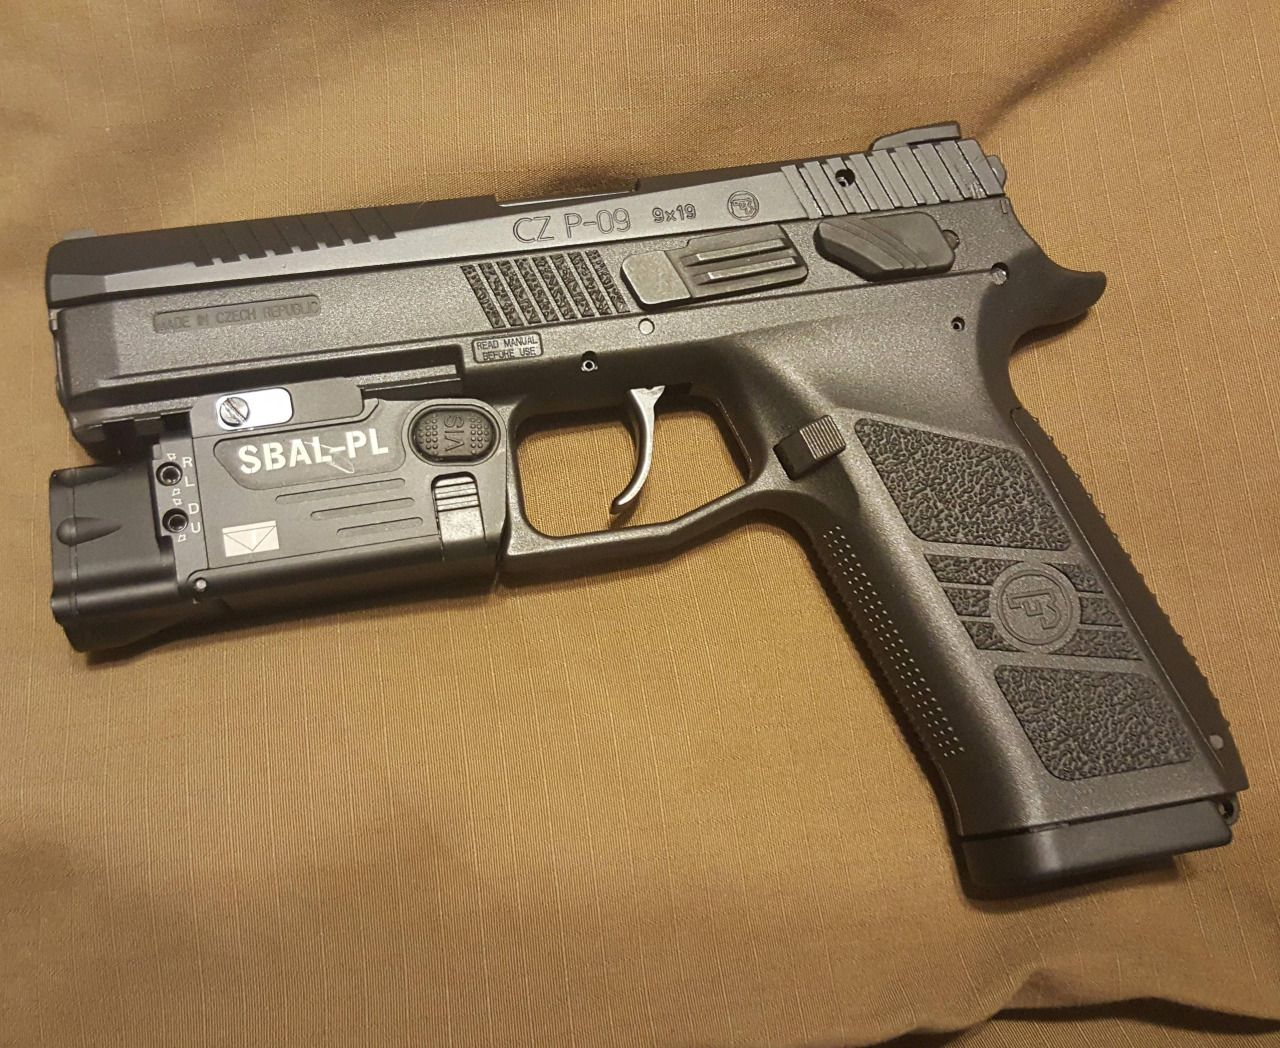 Cz p 09loading that magazine is a pain excellent loader available cz p 09loading that magazine is a pain excellent loader available for your handgun pooptronica Images